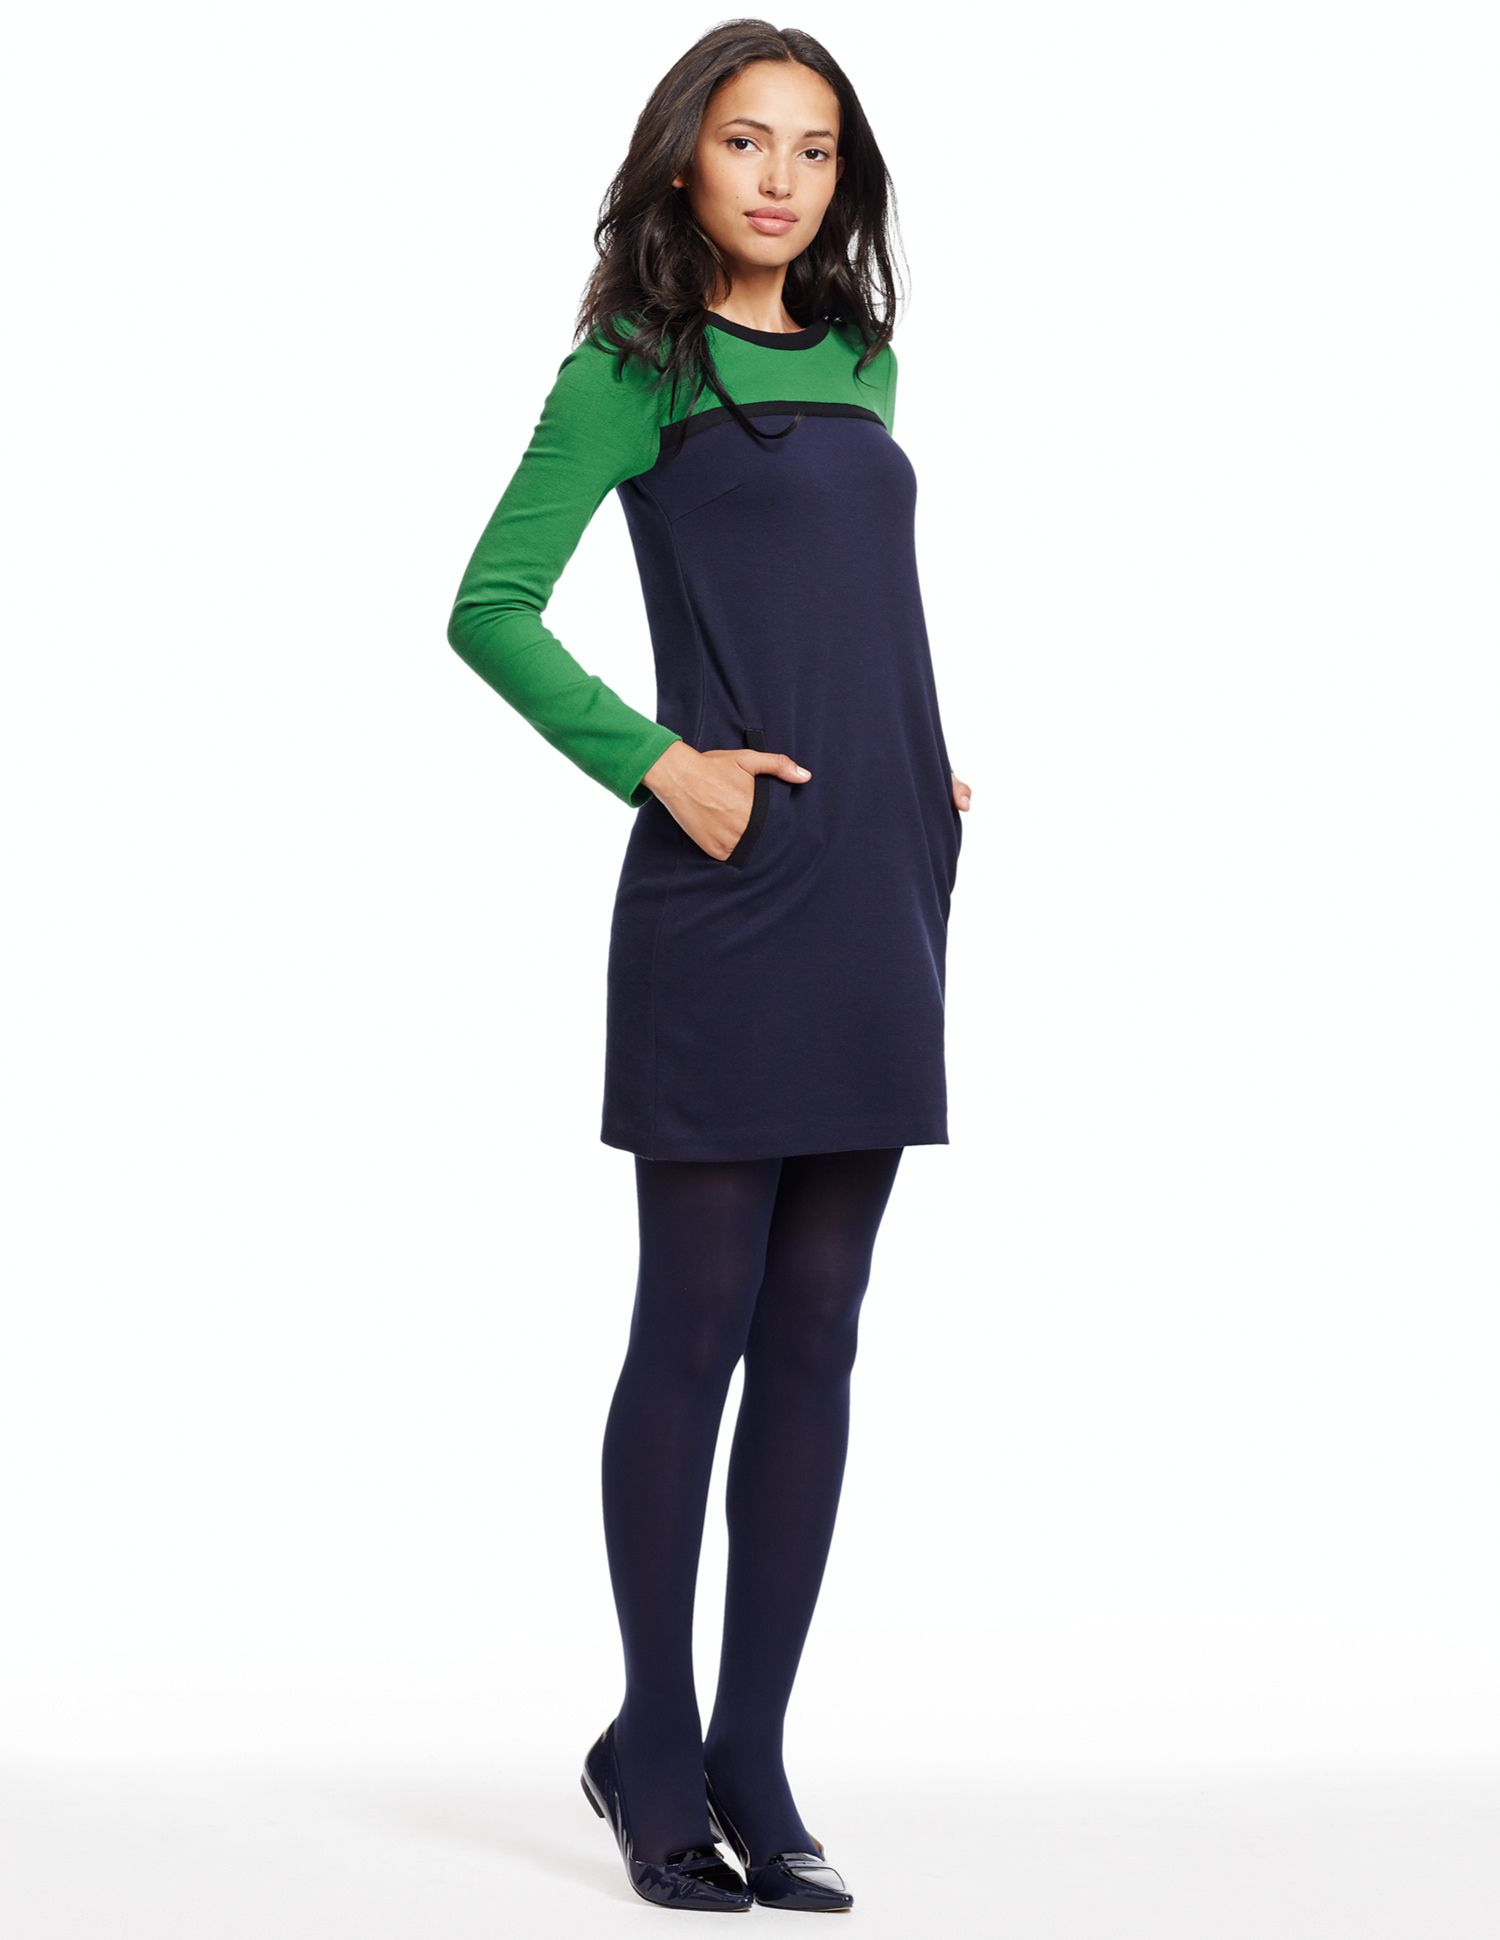 537ef13ae965 Colourblock Tunic WL848 Long Sleeved Tops at Boden Long Tops, Long Sleeve  Tops, Clothes